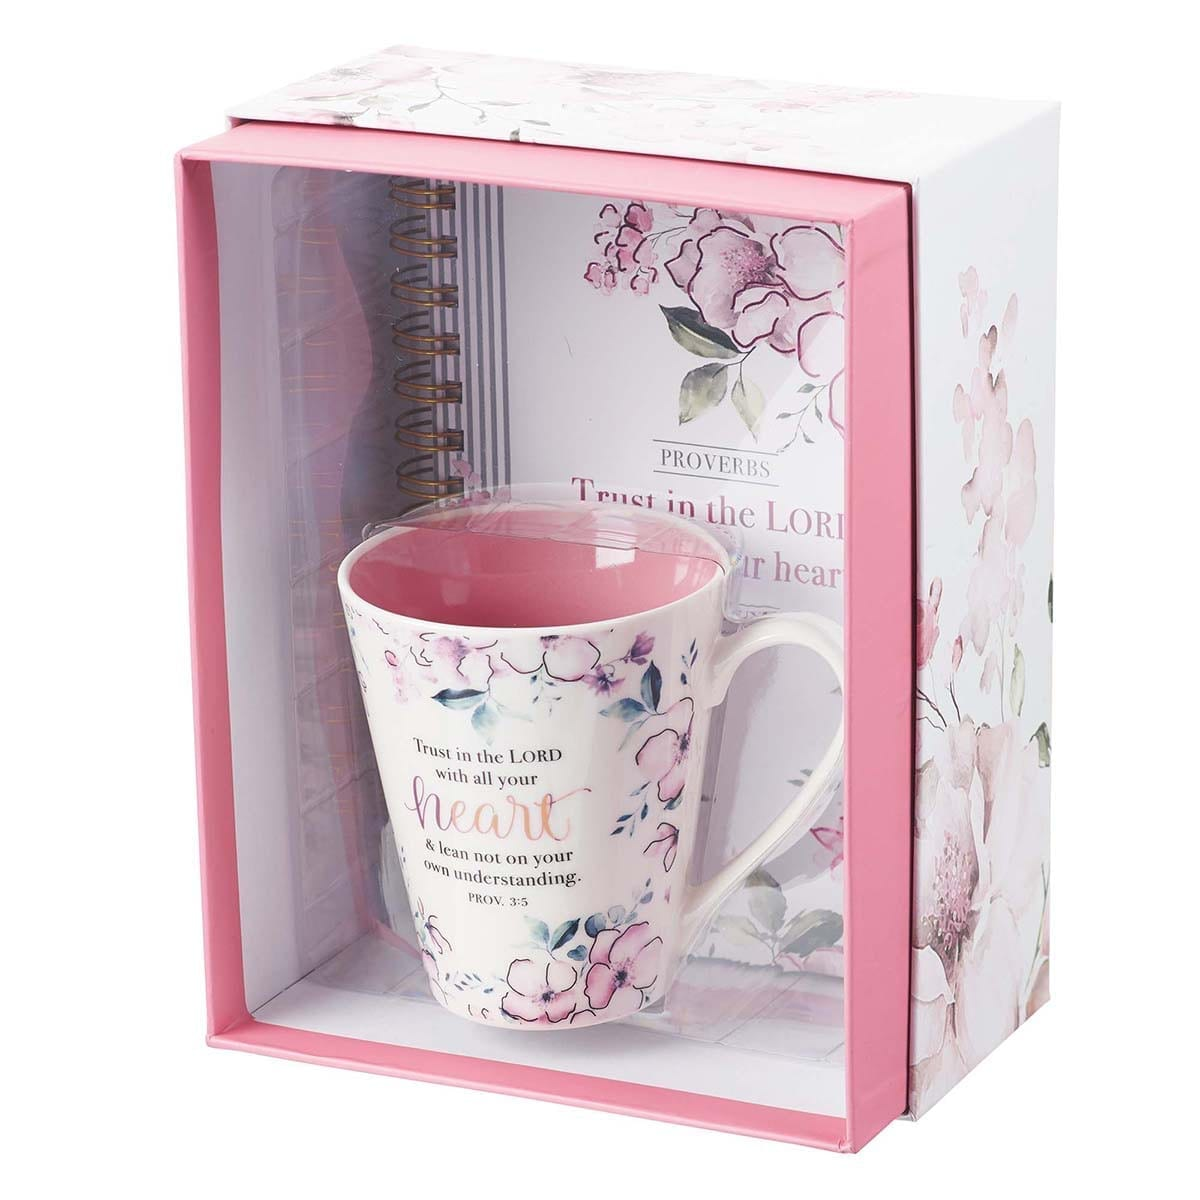 Trust in the LORD Journal and Mug Boxed Gift Set for Women - Proverbs 3:5